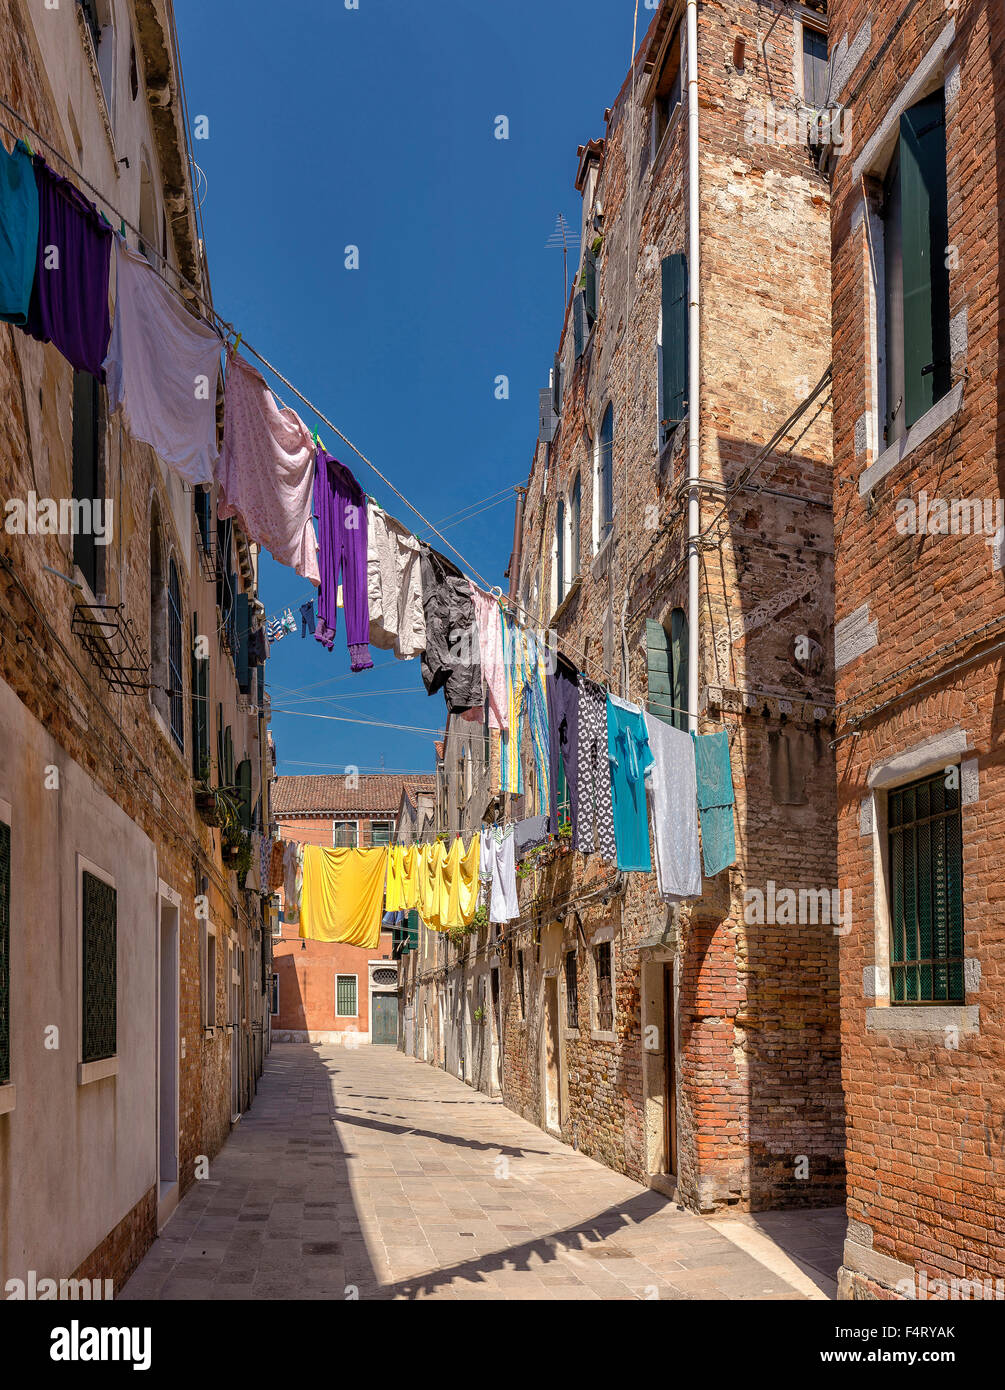 Italy, Europe, Venezia, Venice, Veneto, Drying, laundry, Calle Scudi, Castello, village, summer, - Stock Image